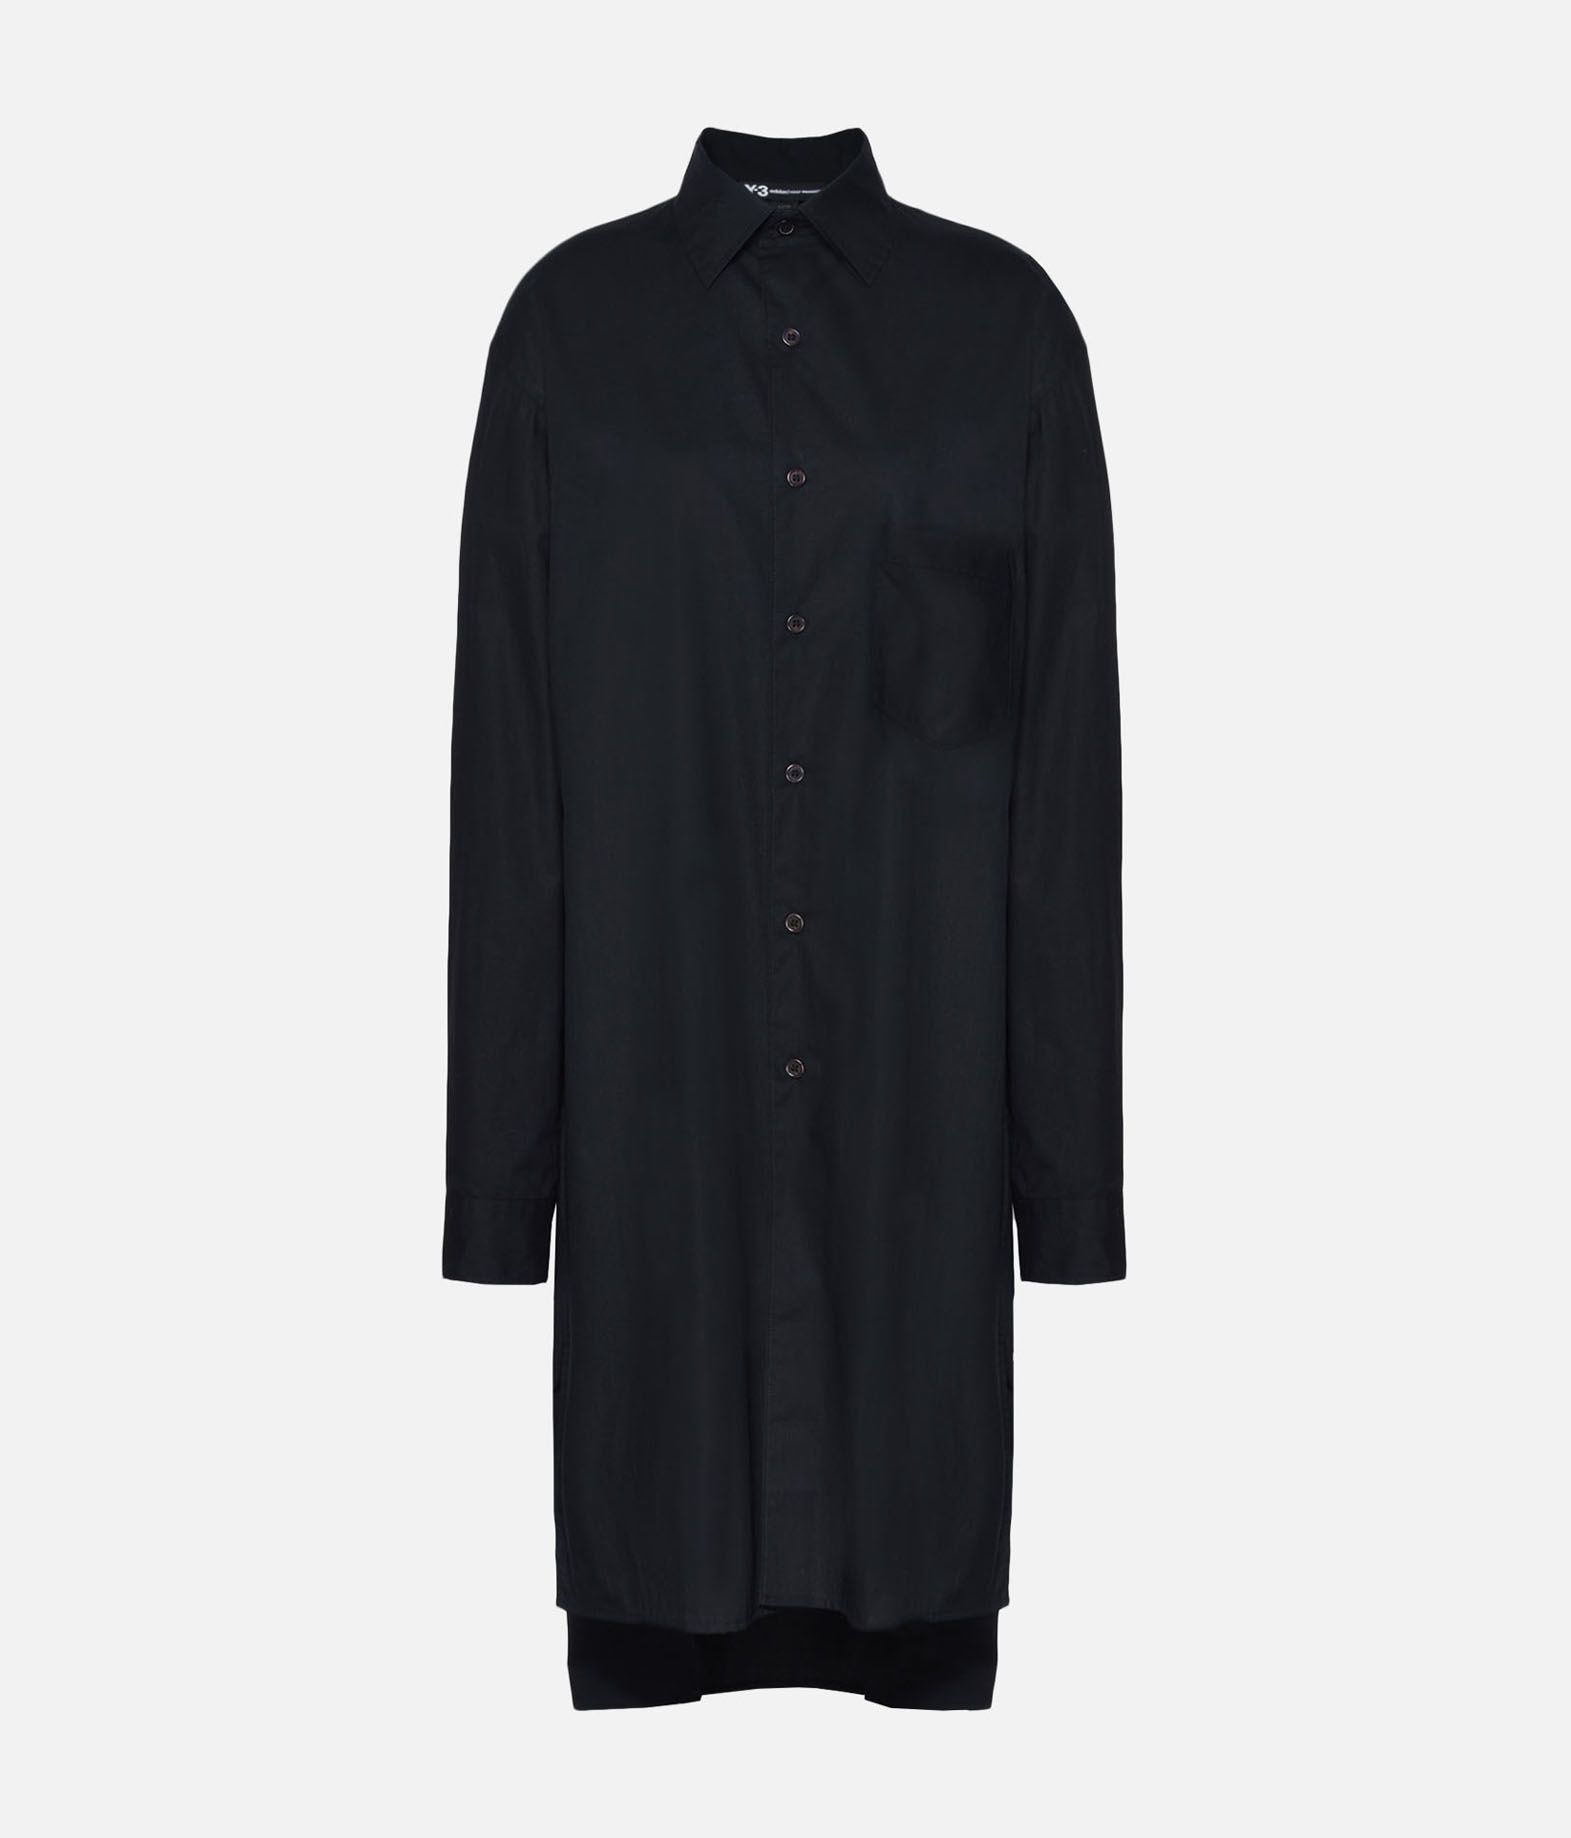 Y-3 Y-3 Stacked Logo Shirt Long sleeve shirt Woman f